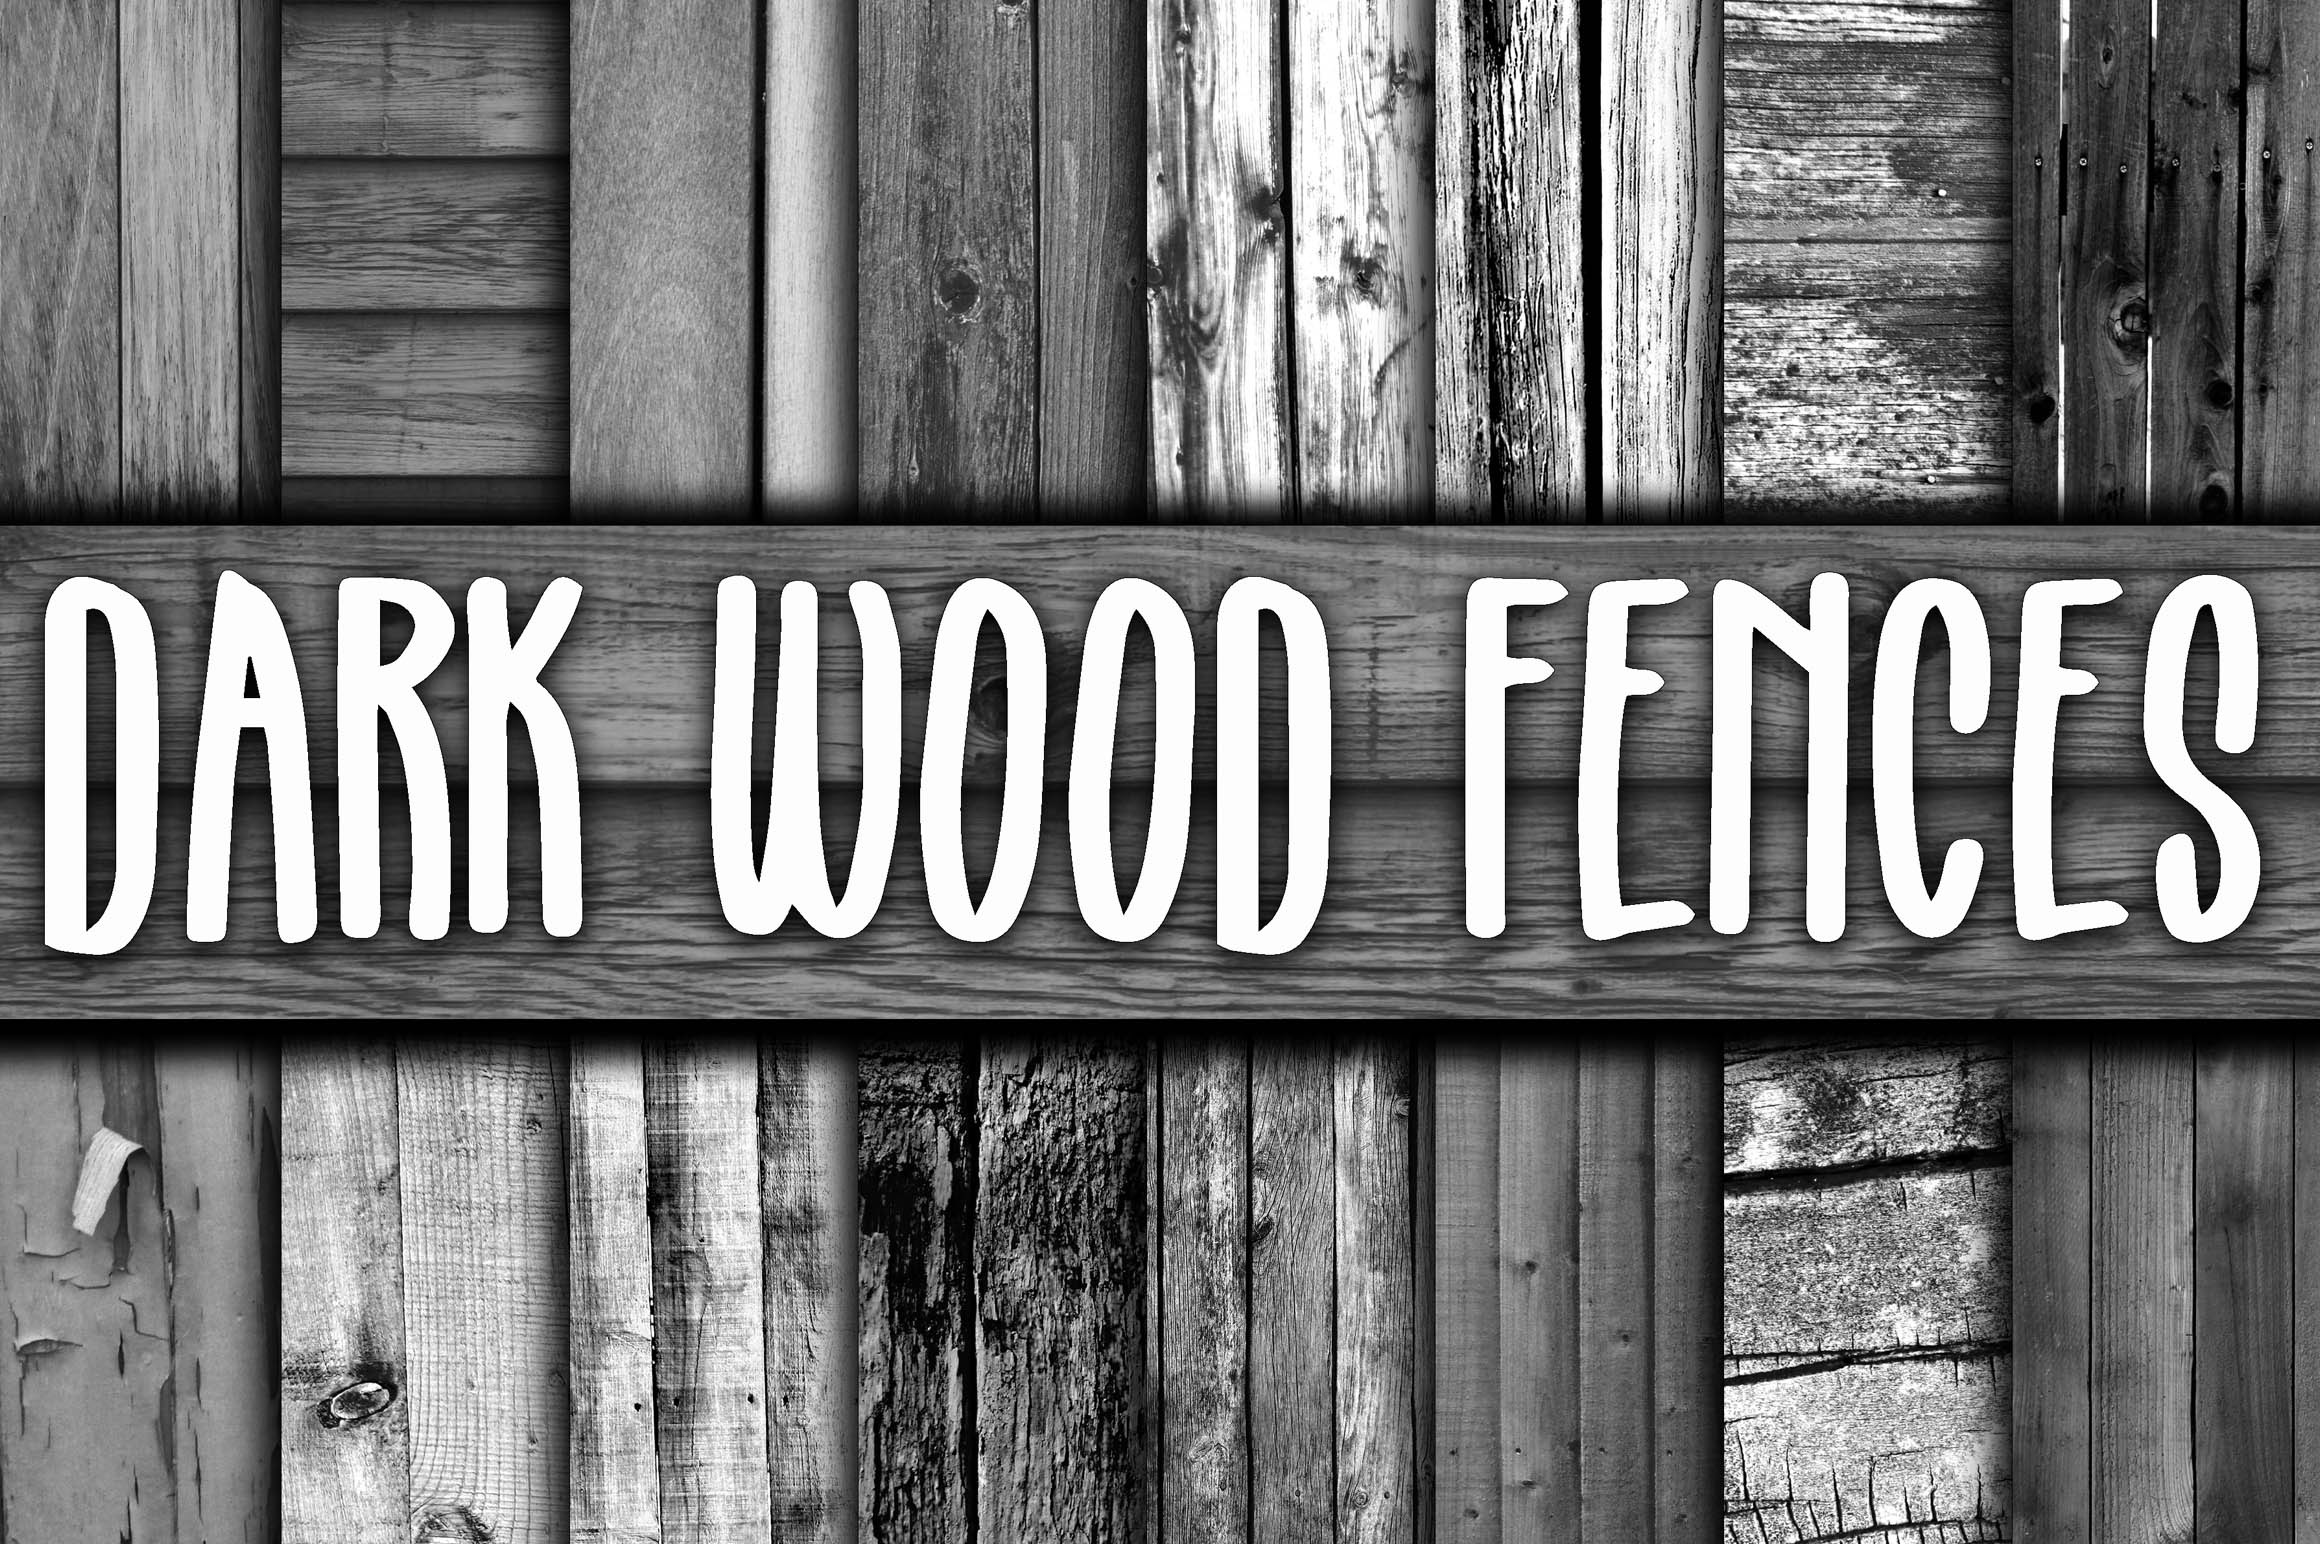 Dark Wood Fence Textures Digital Paper Graphic Backgrounds By oldmarketdesigns